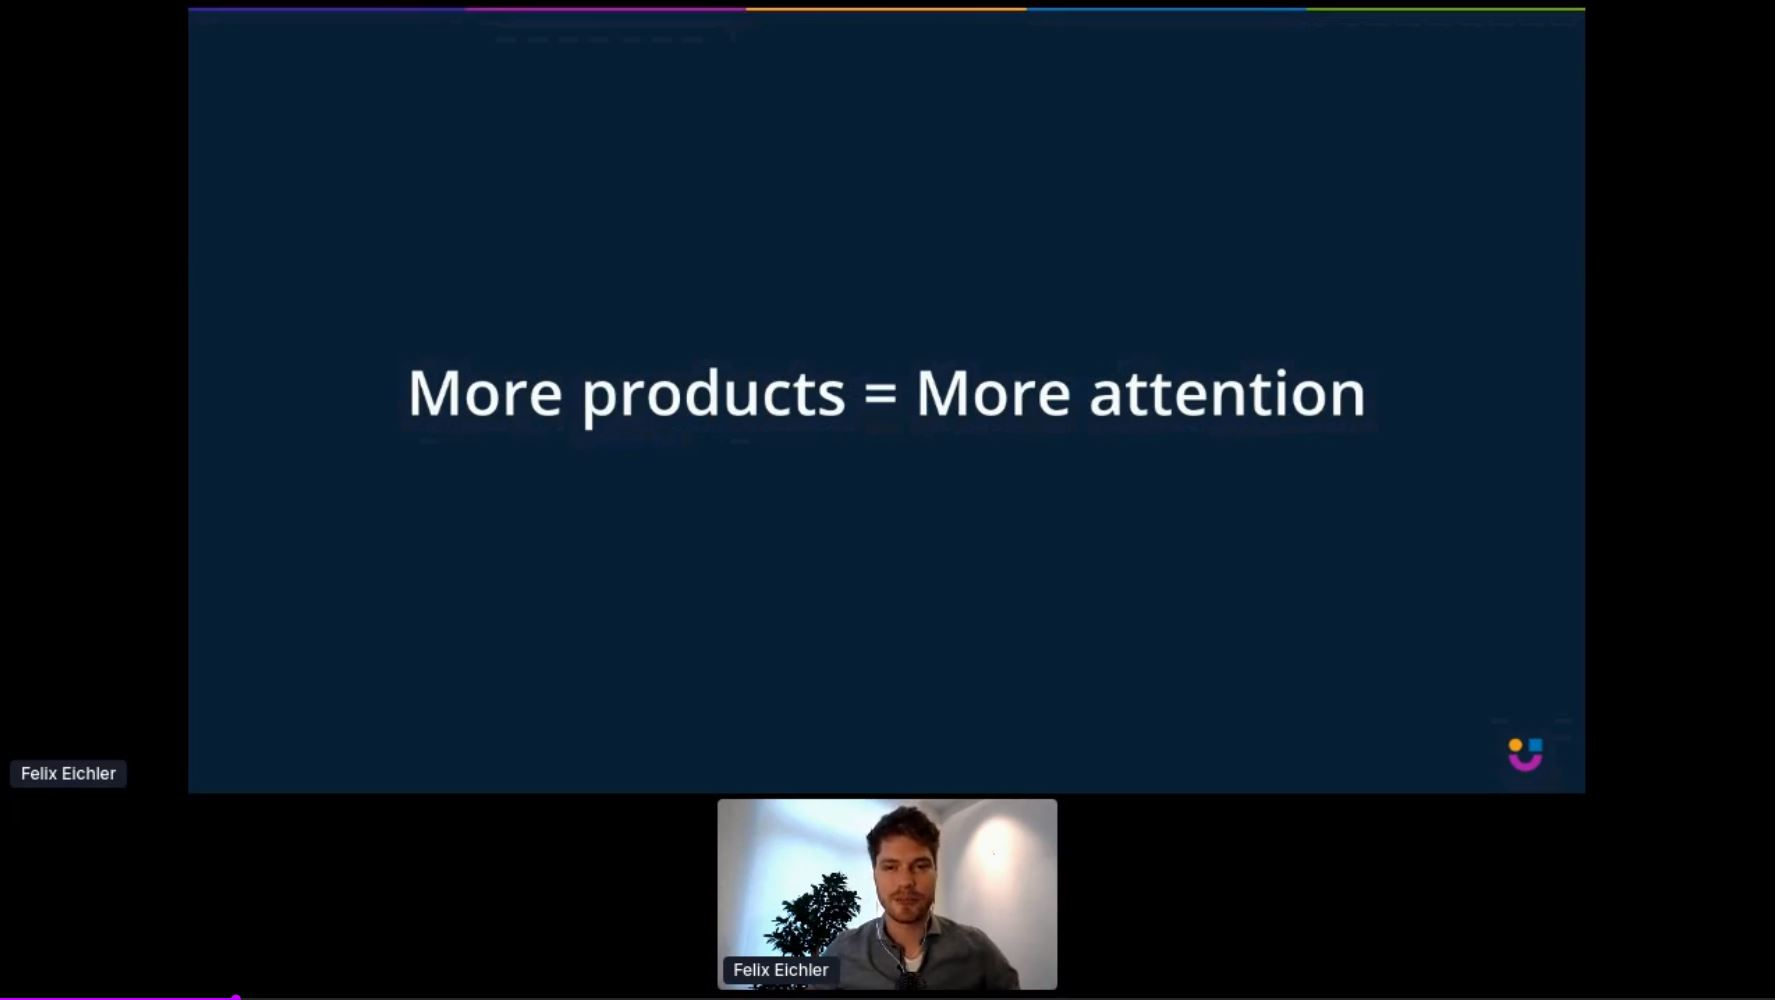 more products = more attention